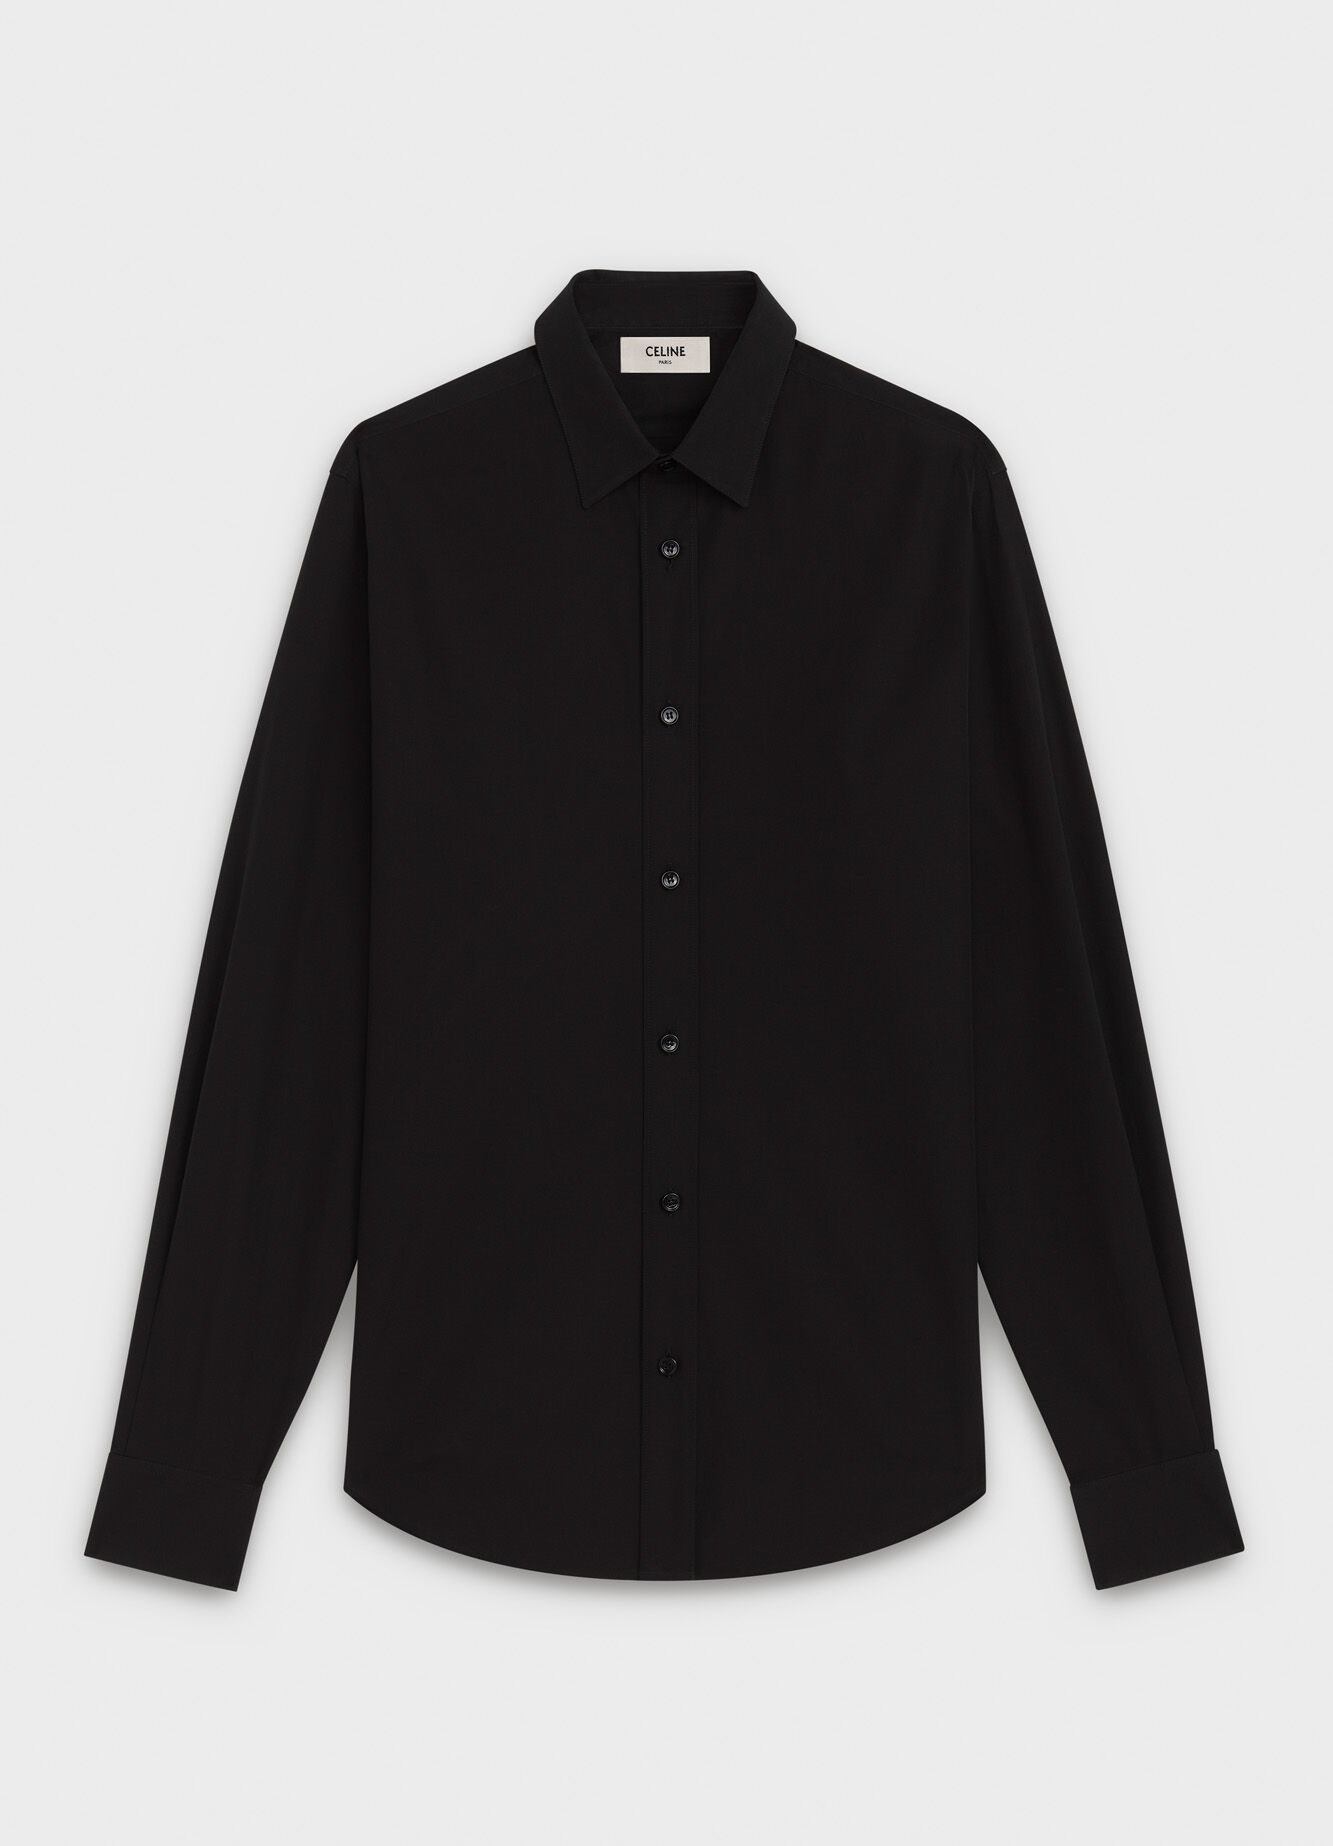 CELINE CLASSIC SHIRT IN CHAMBRAY WITH MODERN COLLAR